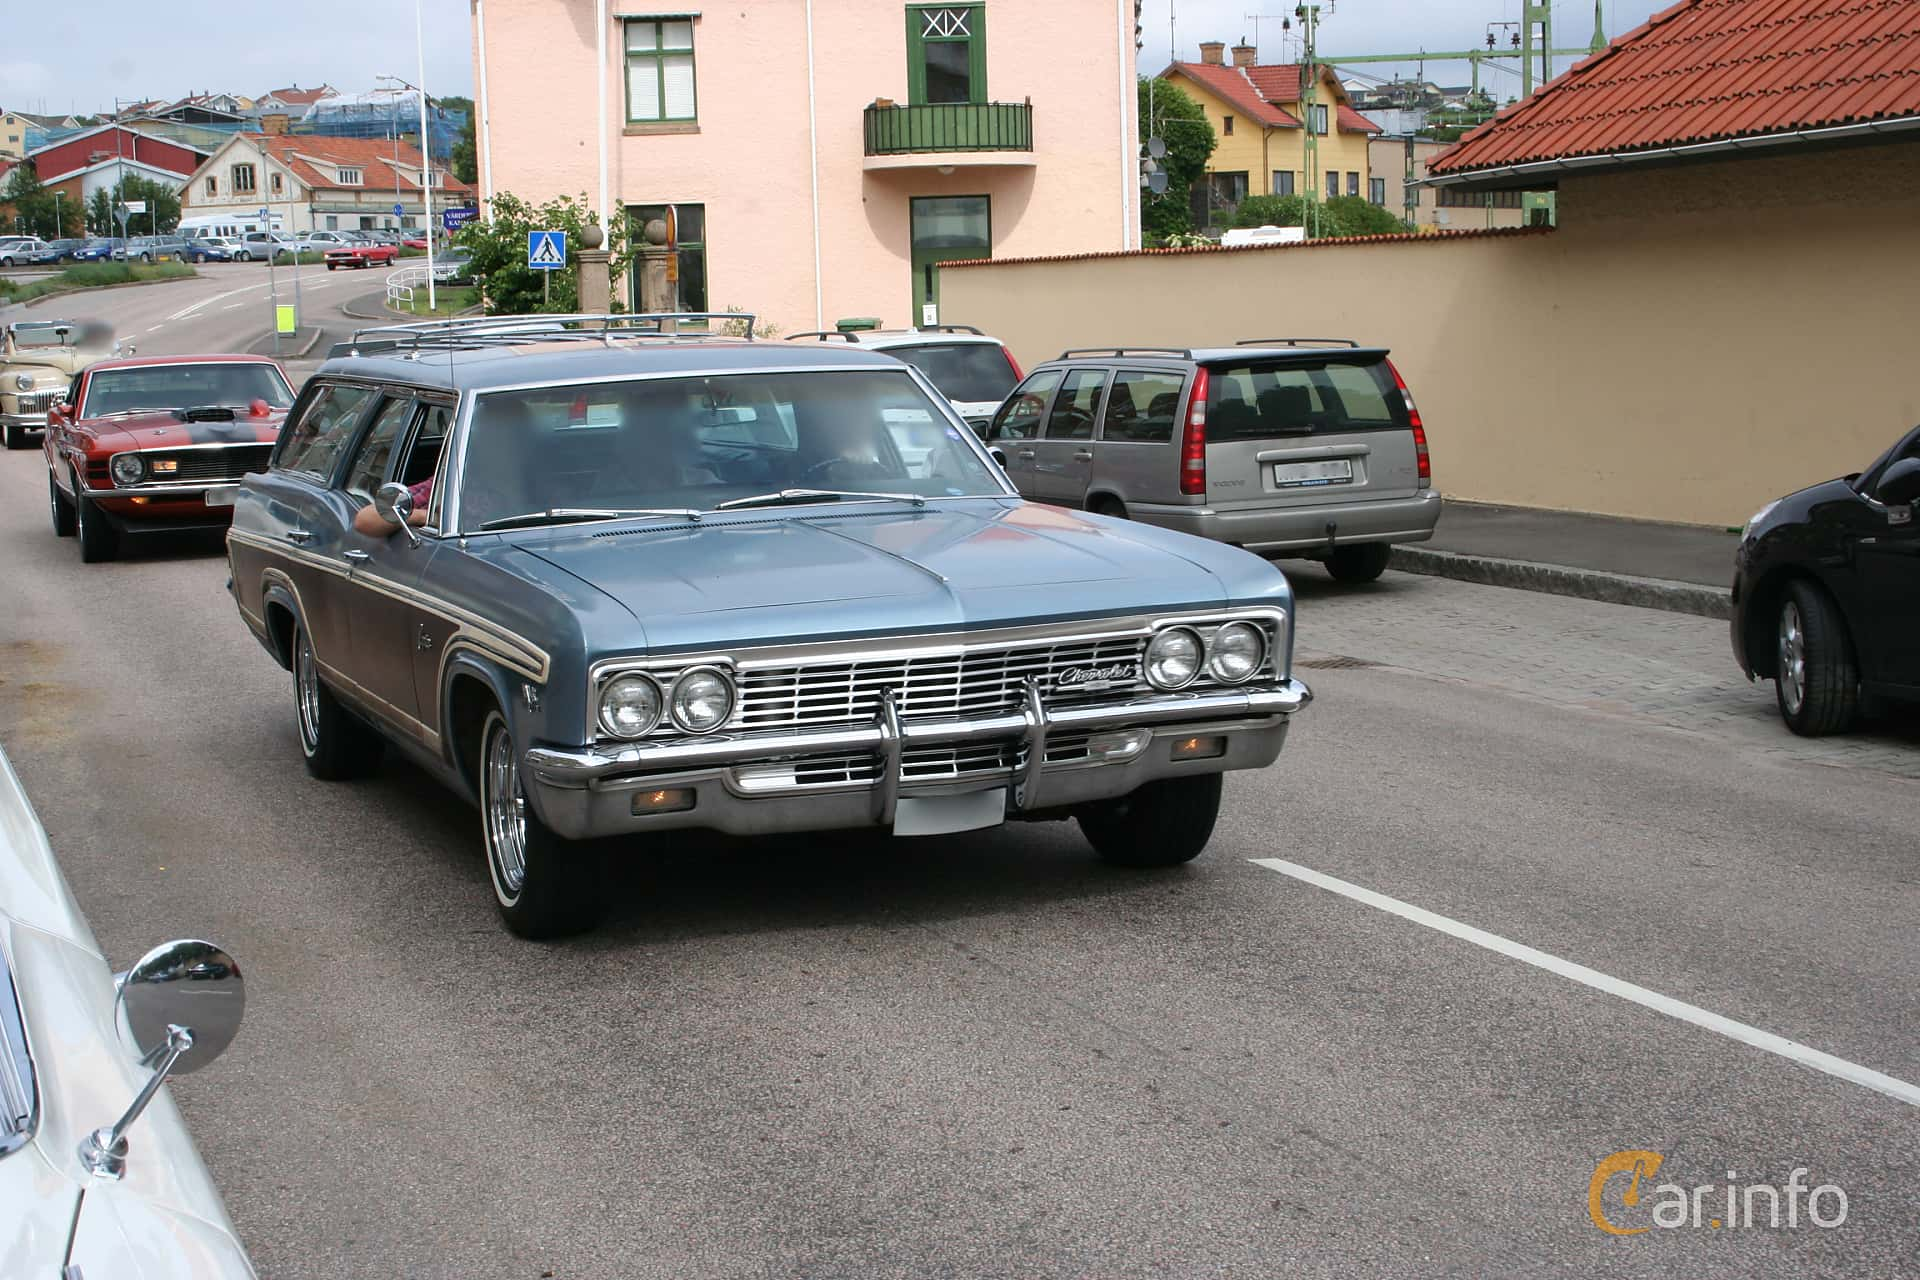 1 Images Of Chevrolet Caprice 2 Seat Station Wagon 65 V8 Powerglide 1966 Chevy Front Side 329ps